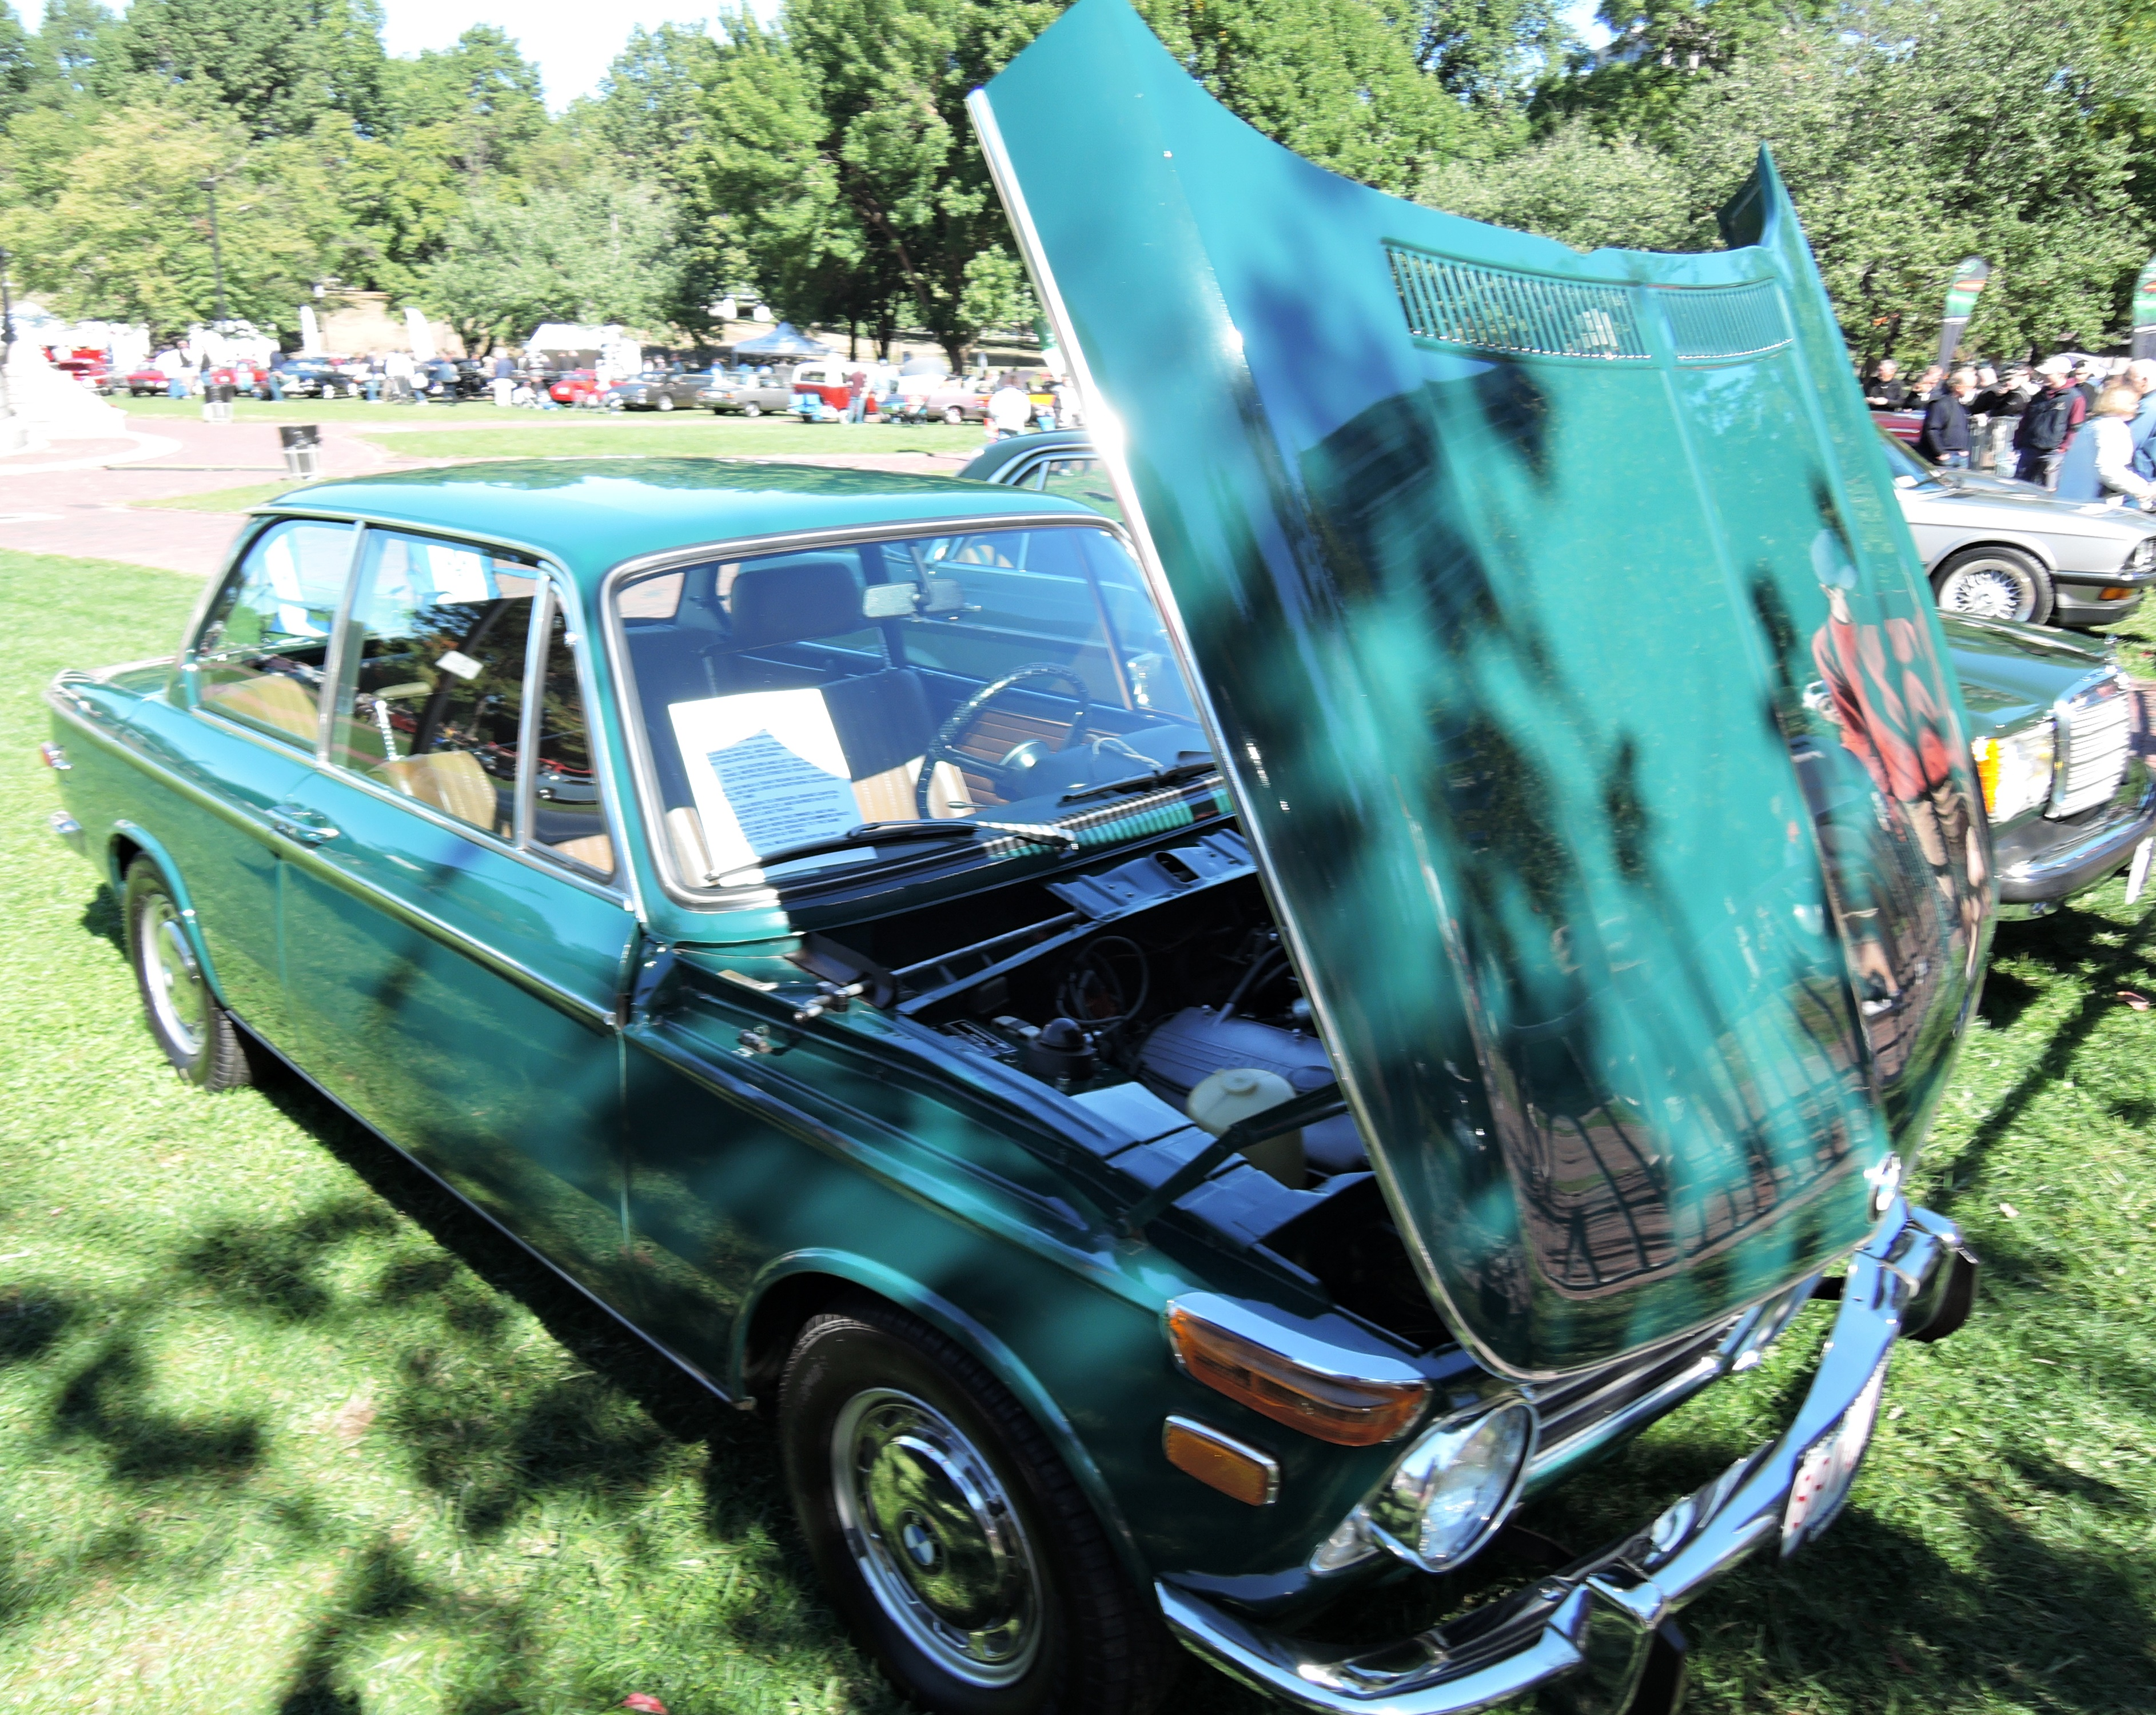 green 1970 BMW 2002 - The Boston Cup on Boston Common